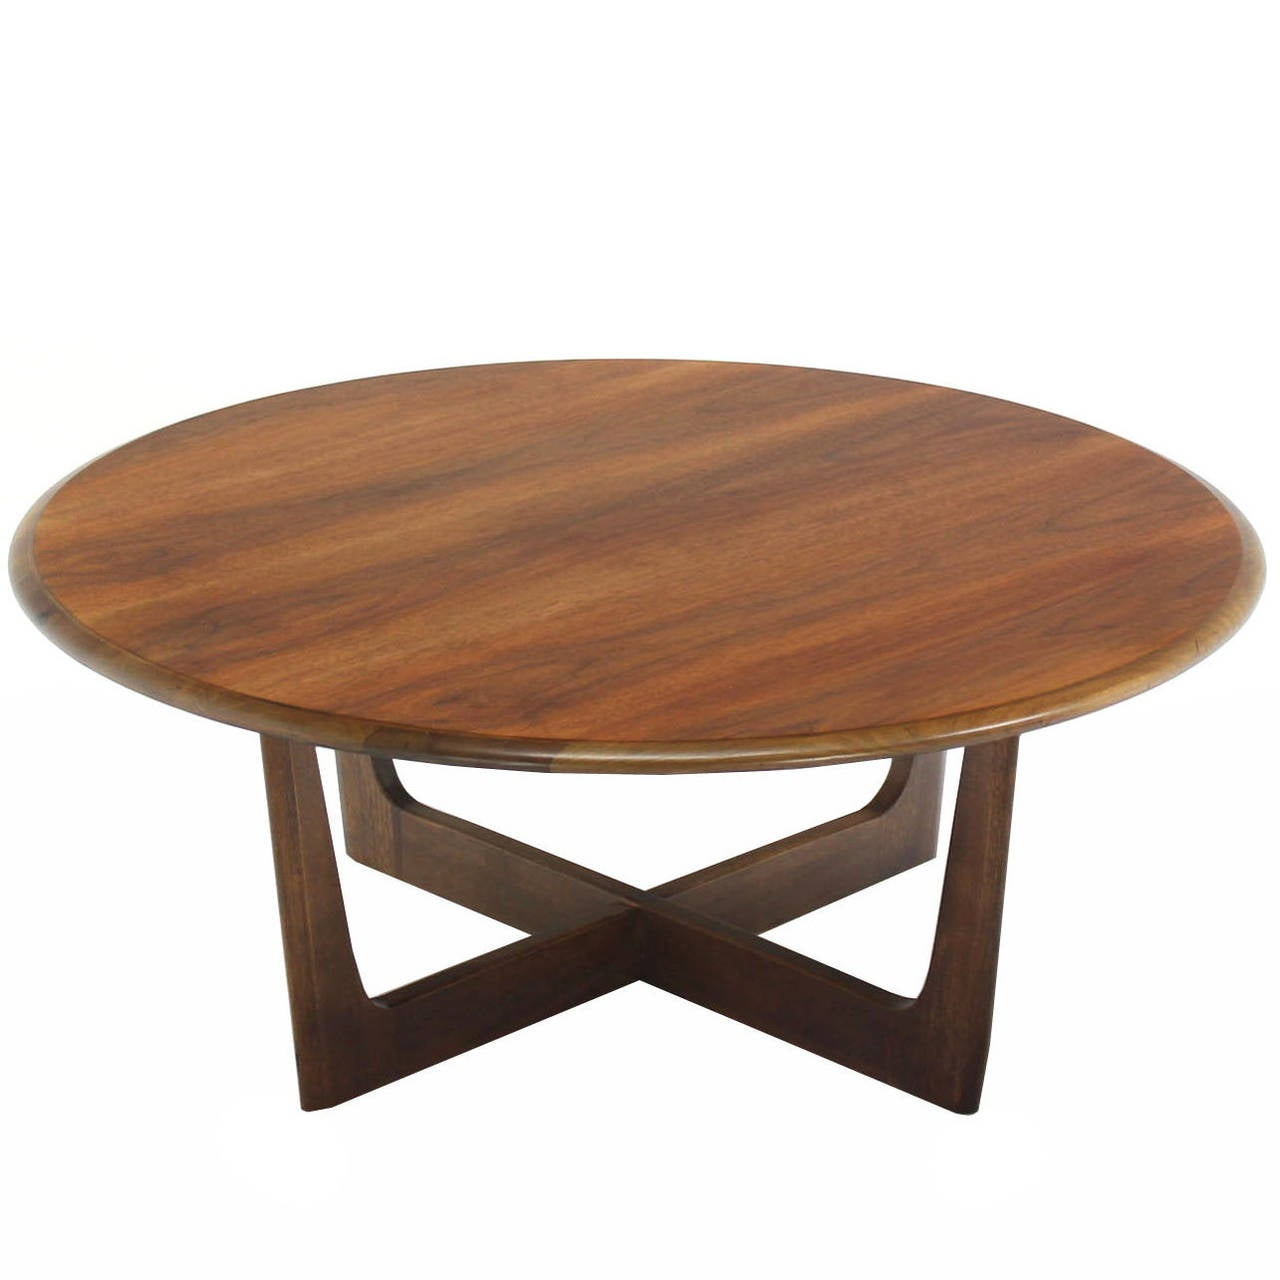 Walnut x base round coffee table for sale at 1stdibs for X coffee tables